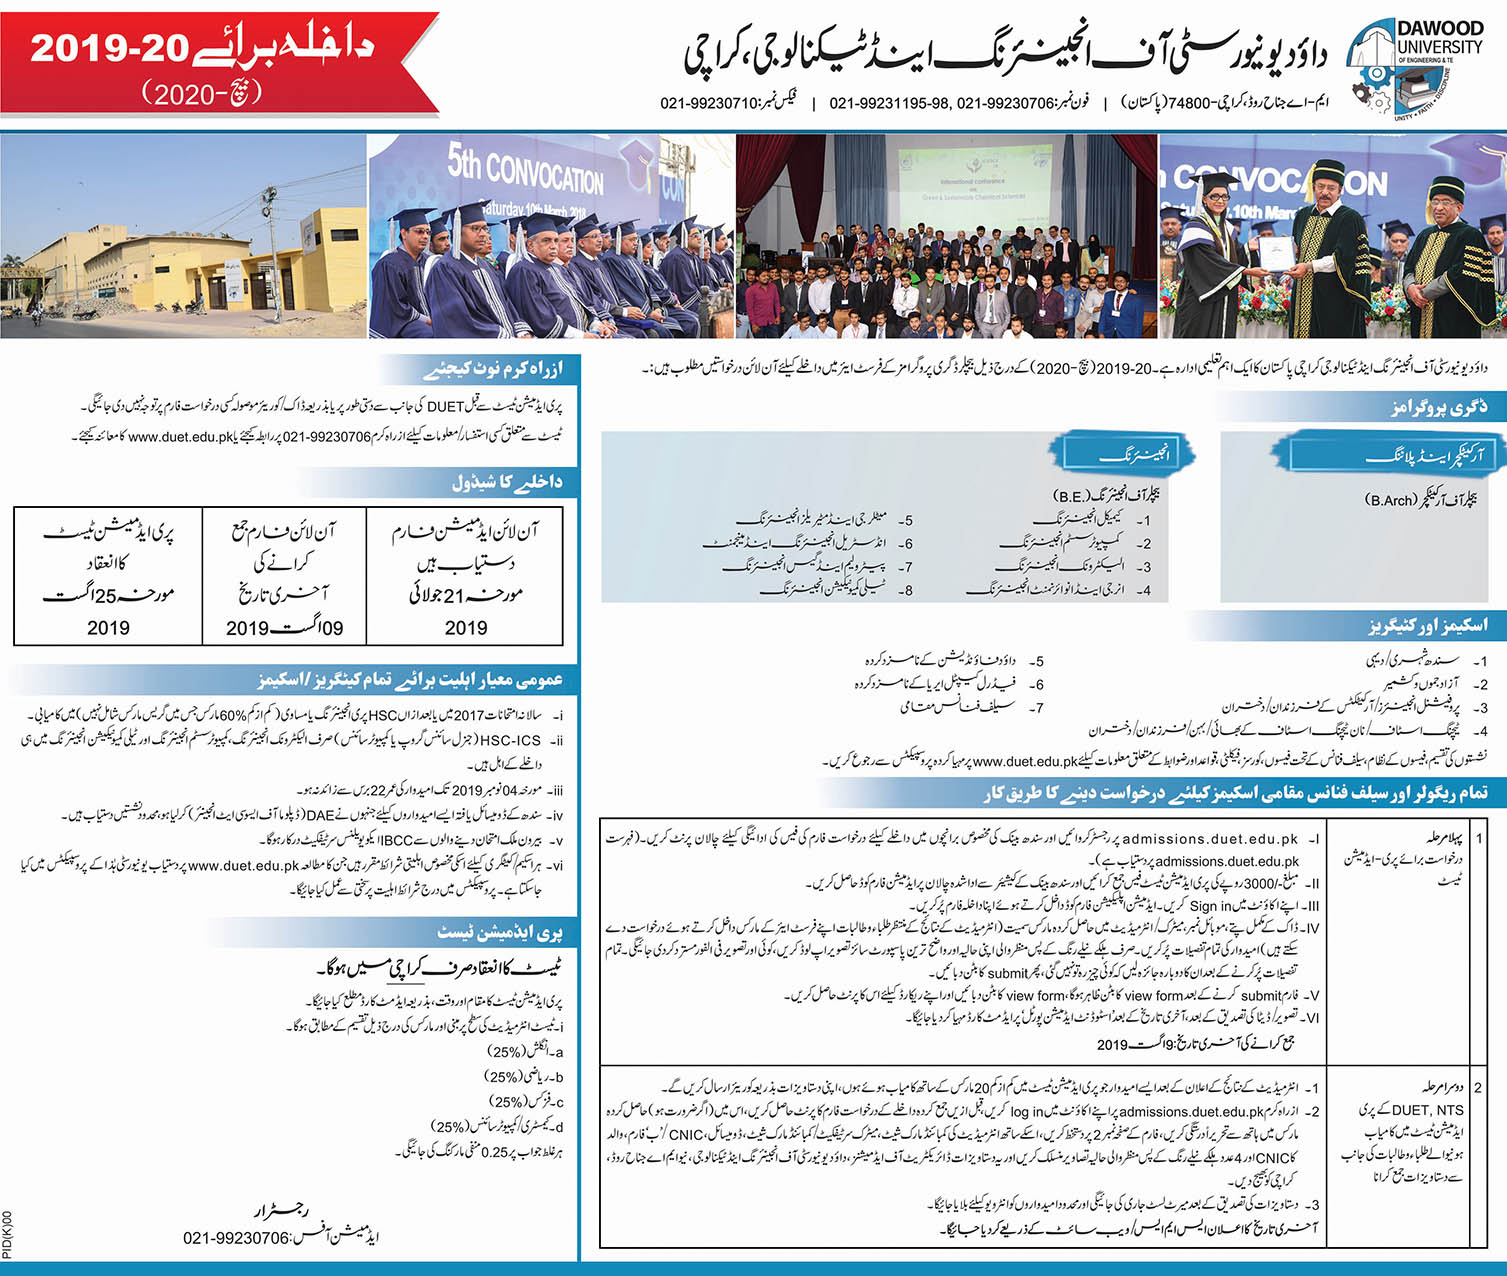 Dawood University of Engineering Technology DUET Karachi Admission 2019 2020 Batch 2020 NTS Test Roll No Slip